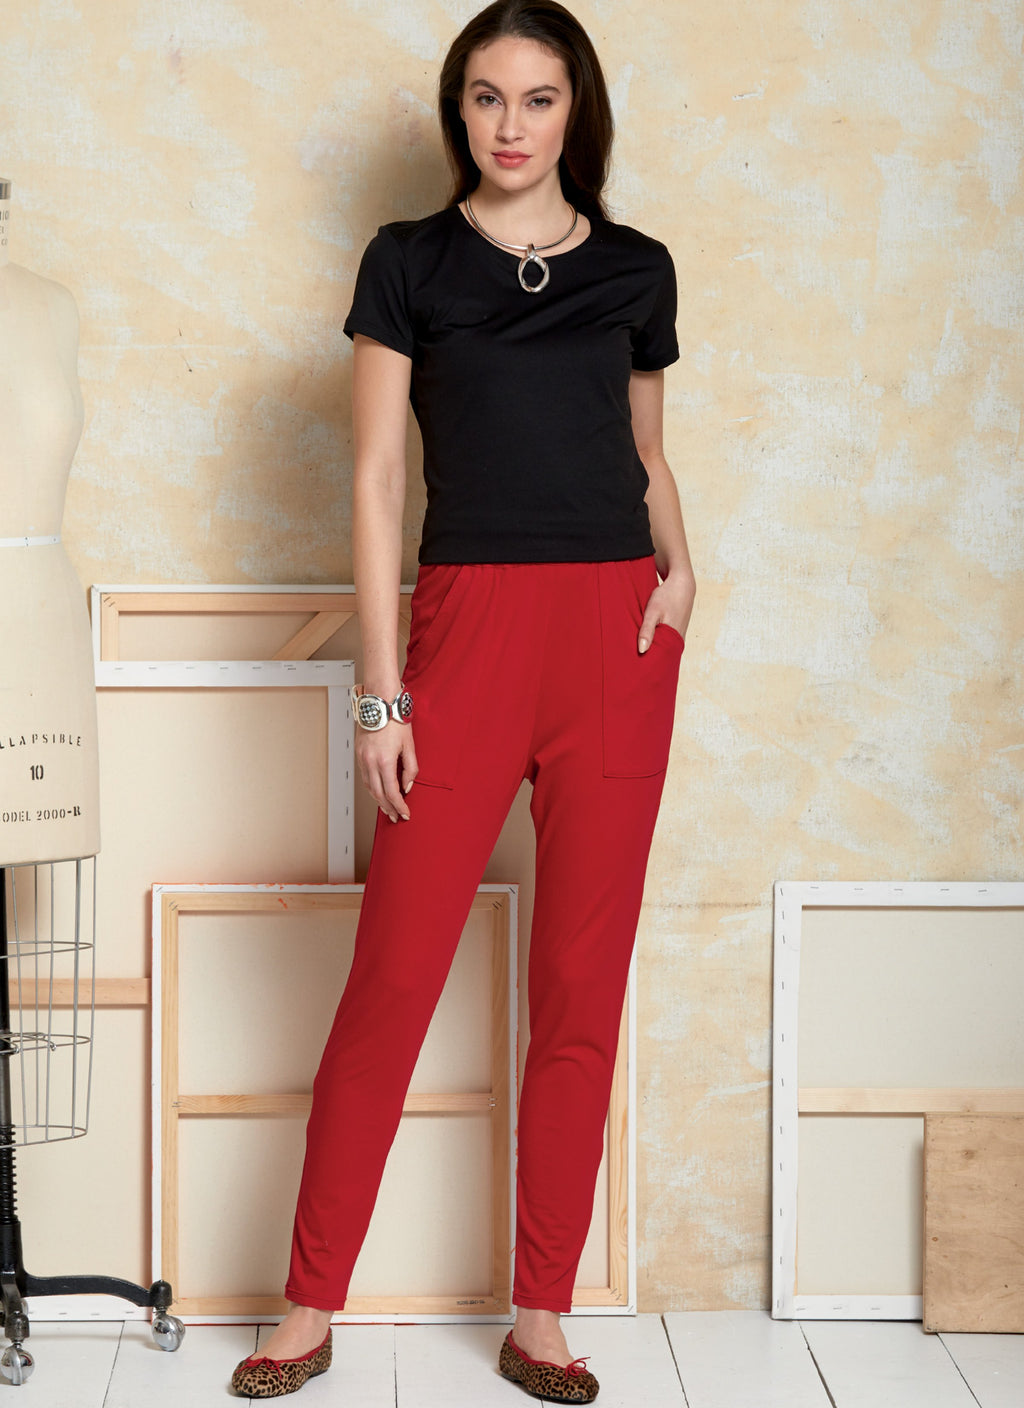 Vogue Pattern 9374 Misses' Pants sewing pattern